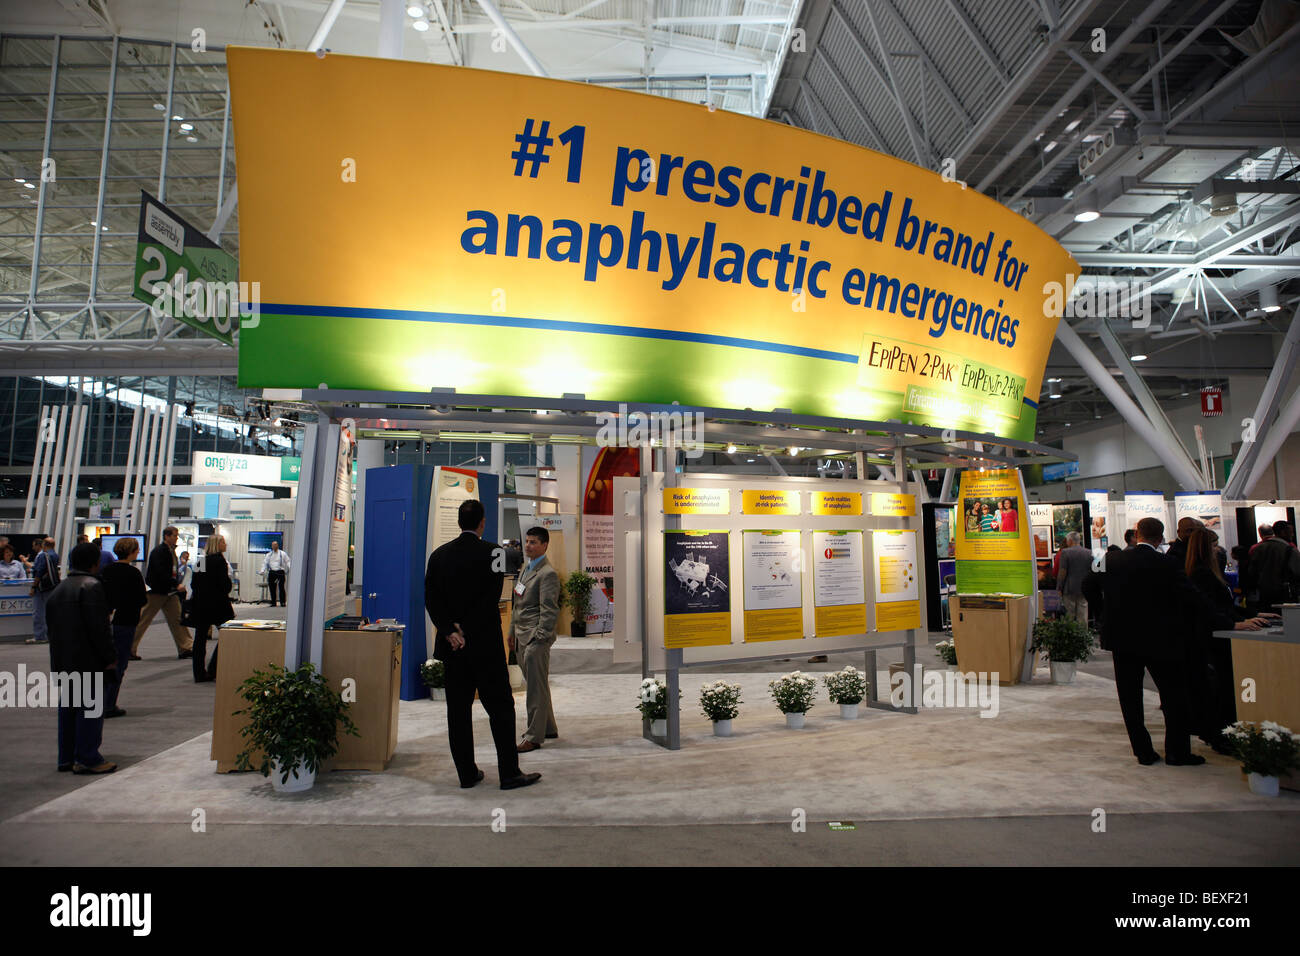 Drug company display at a physicians convention, Boston  Convention Center - Stock Image